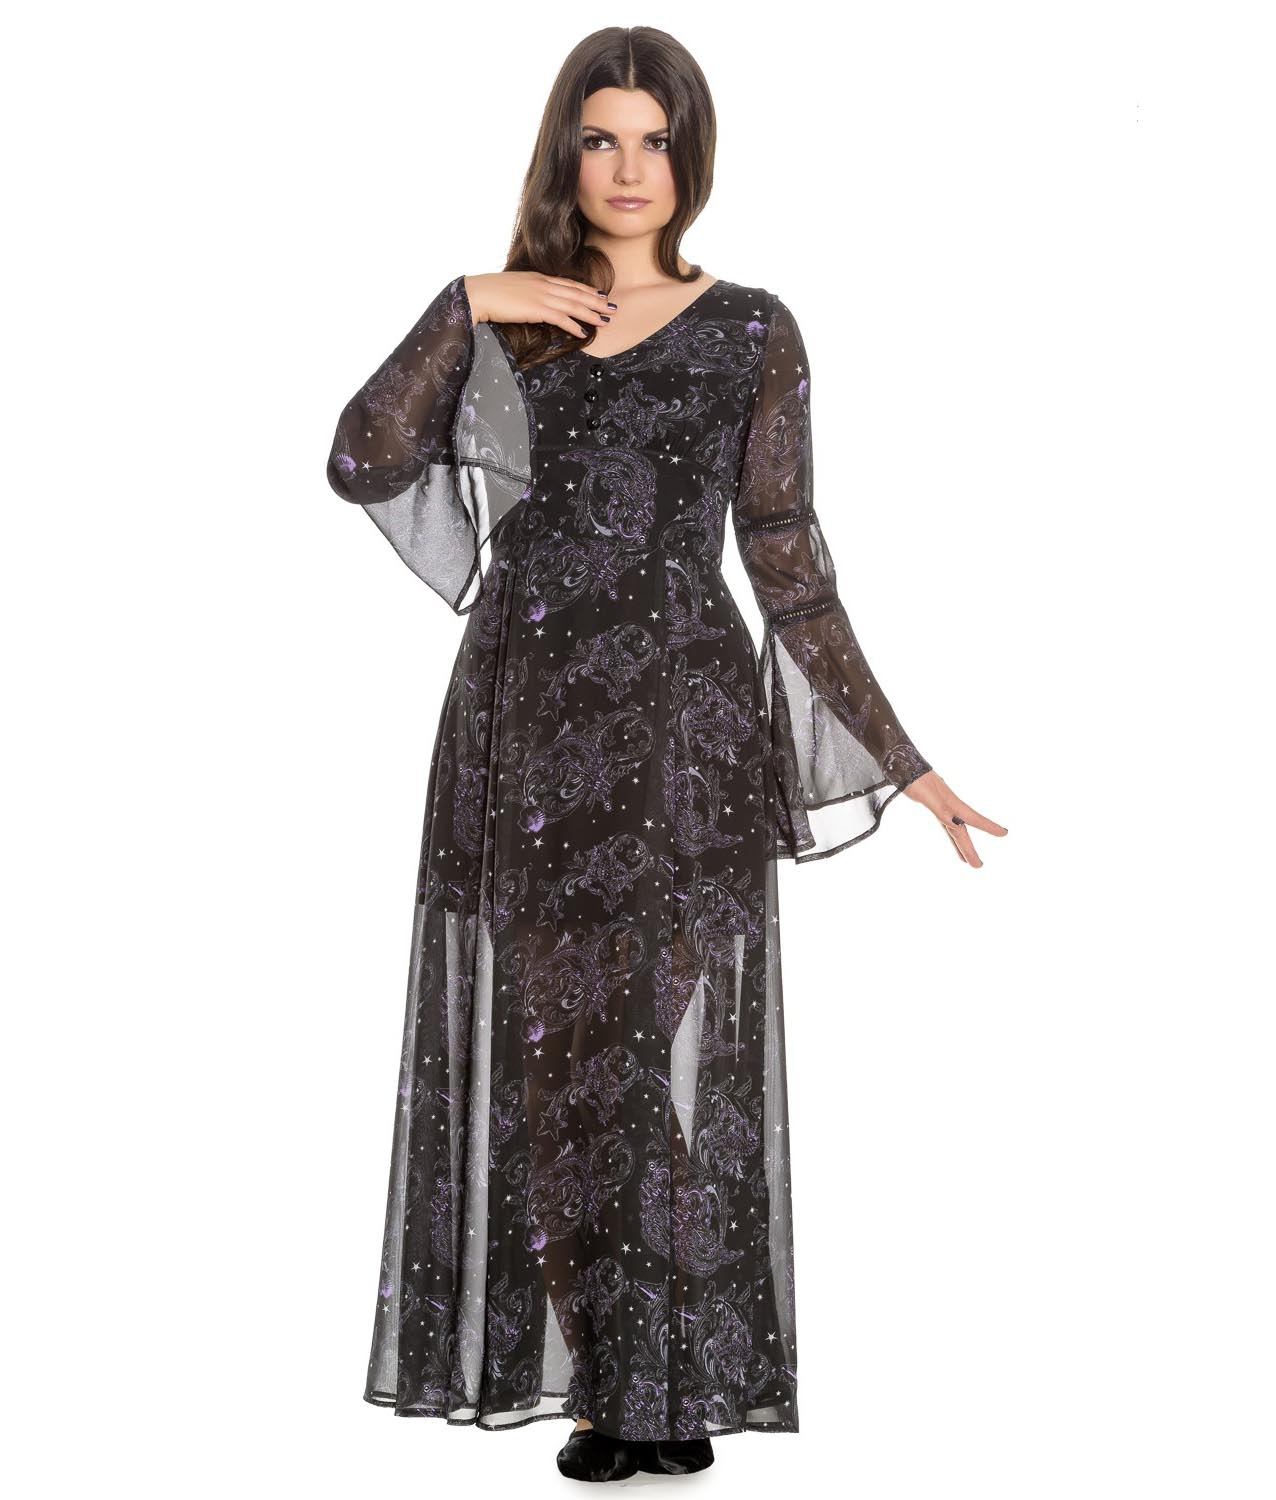 Hell-Bunny-Spin-Doctor-Goth-Maxi-Dress-DARK-SEA-Mermaid-Skeletons-All-Sizes thumbnail 15